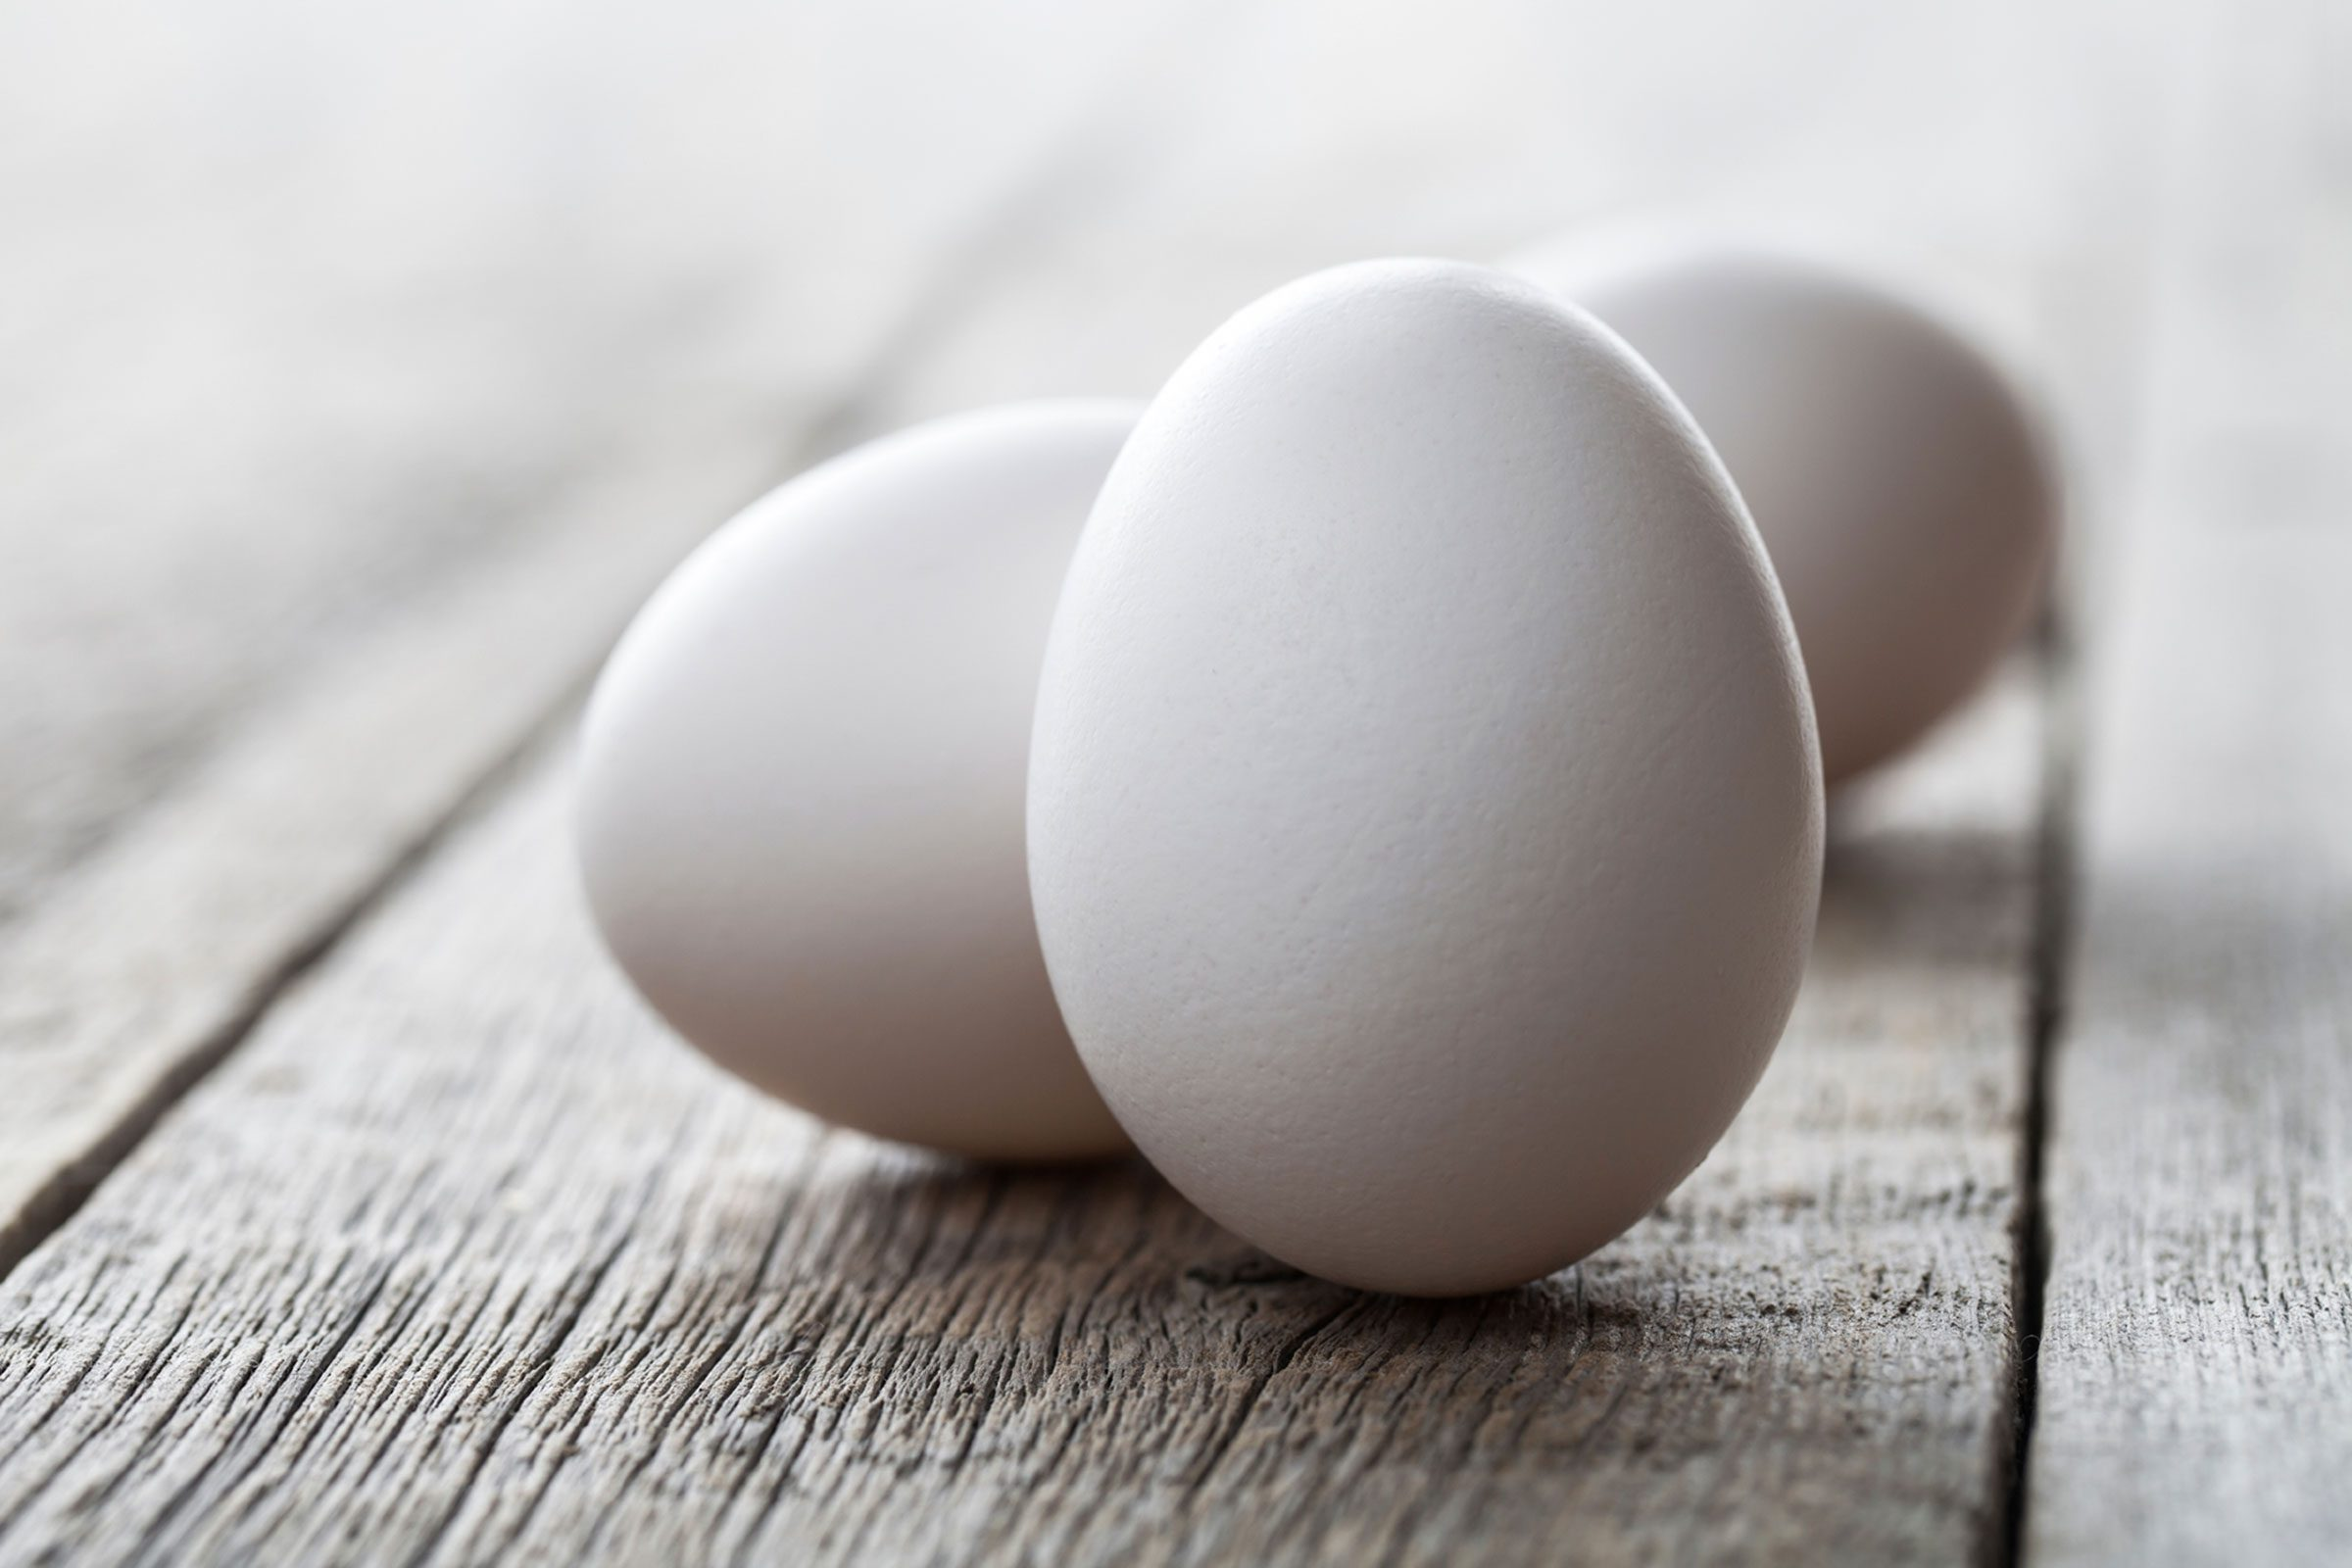 Adult allergy to eggs